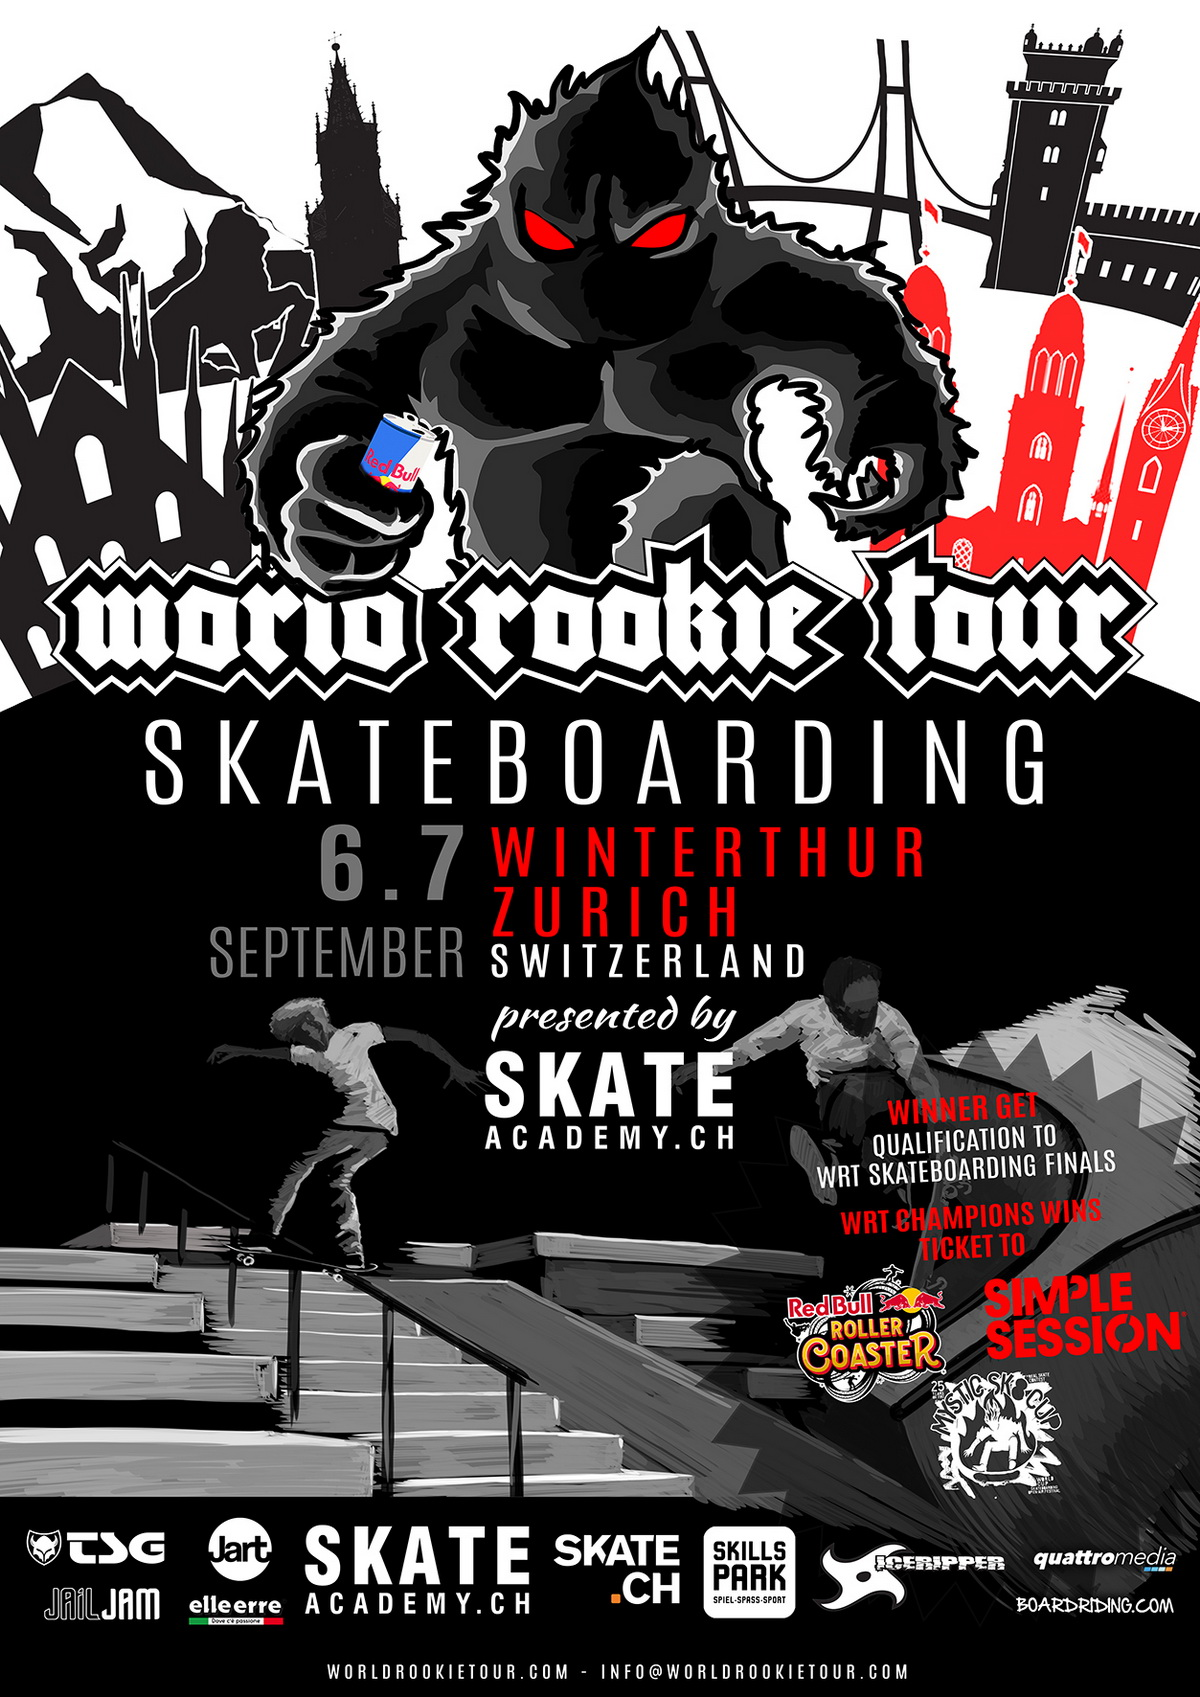 All info for WRT Skate stop in Swiss - World Rookie Tour